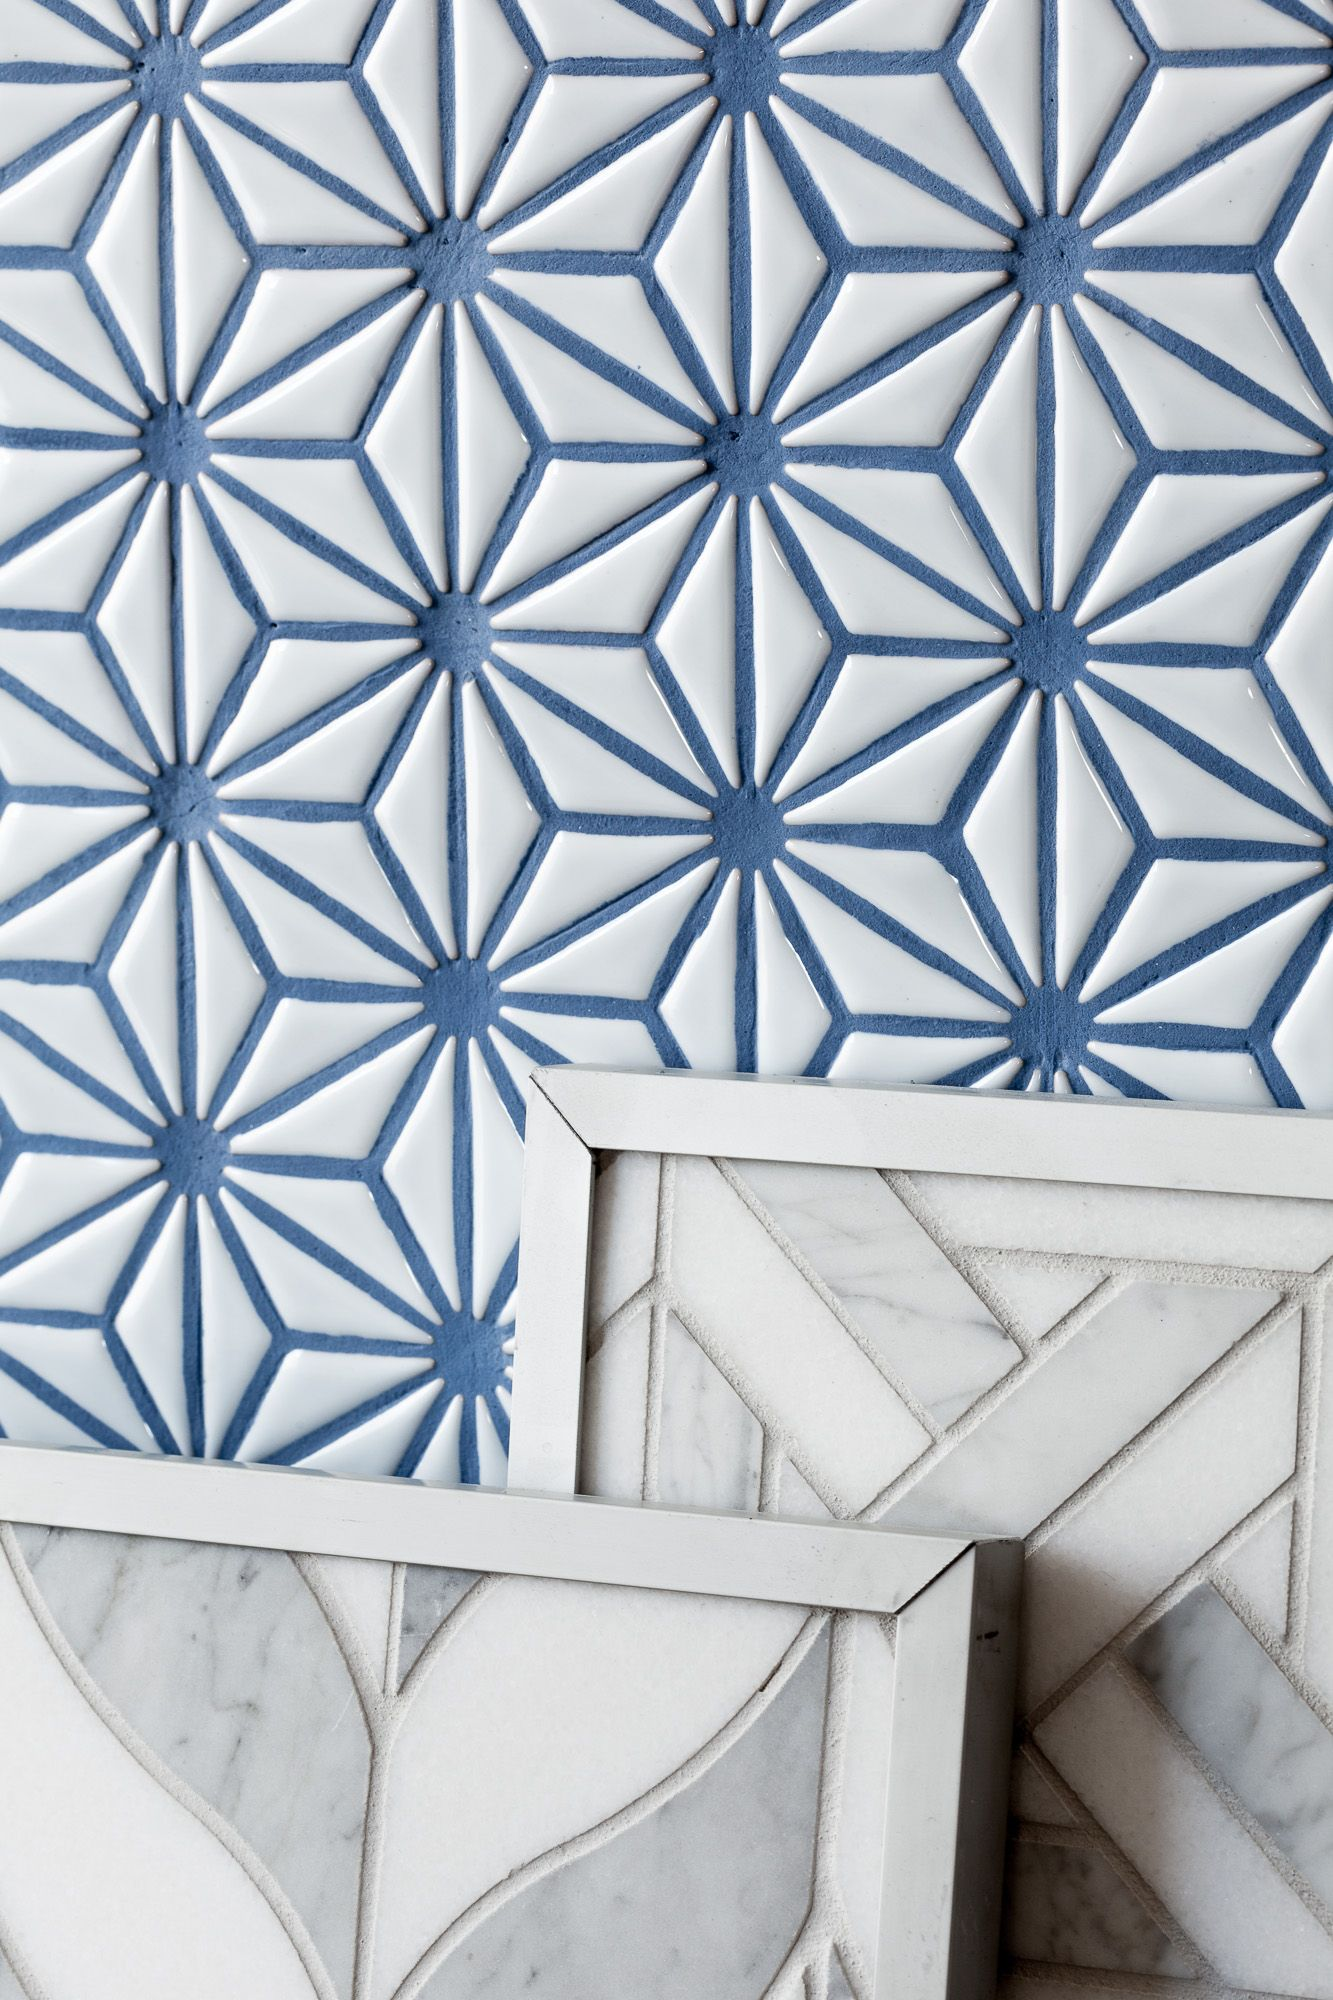 Starburst Mosaic with Blue Grout - Byzantine Design Gallery | House ...